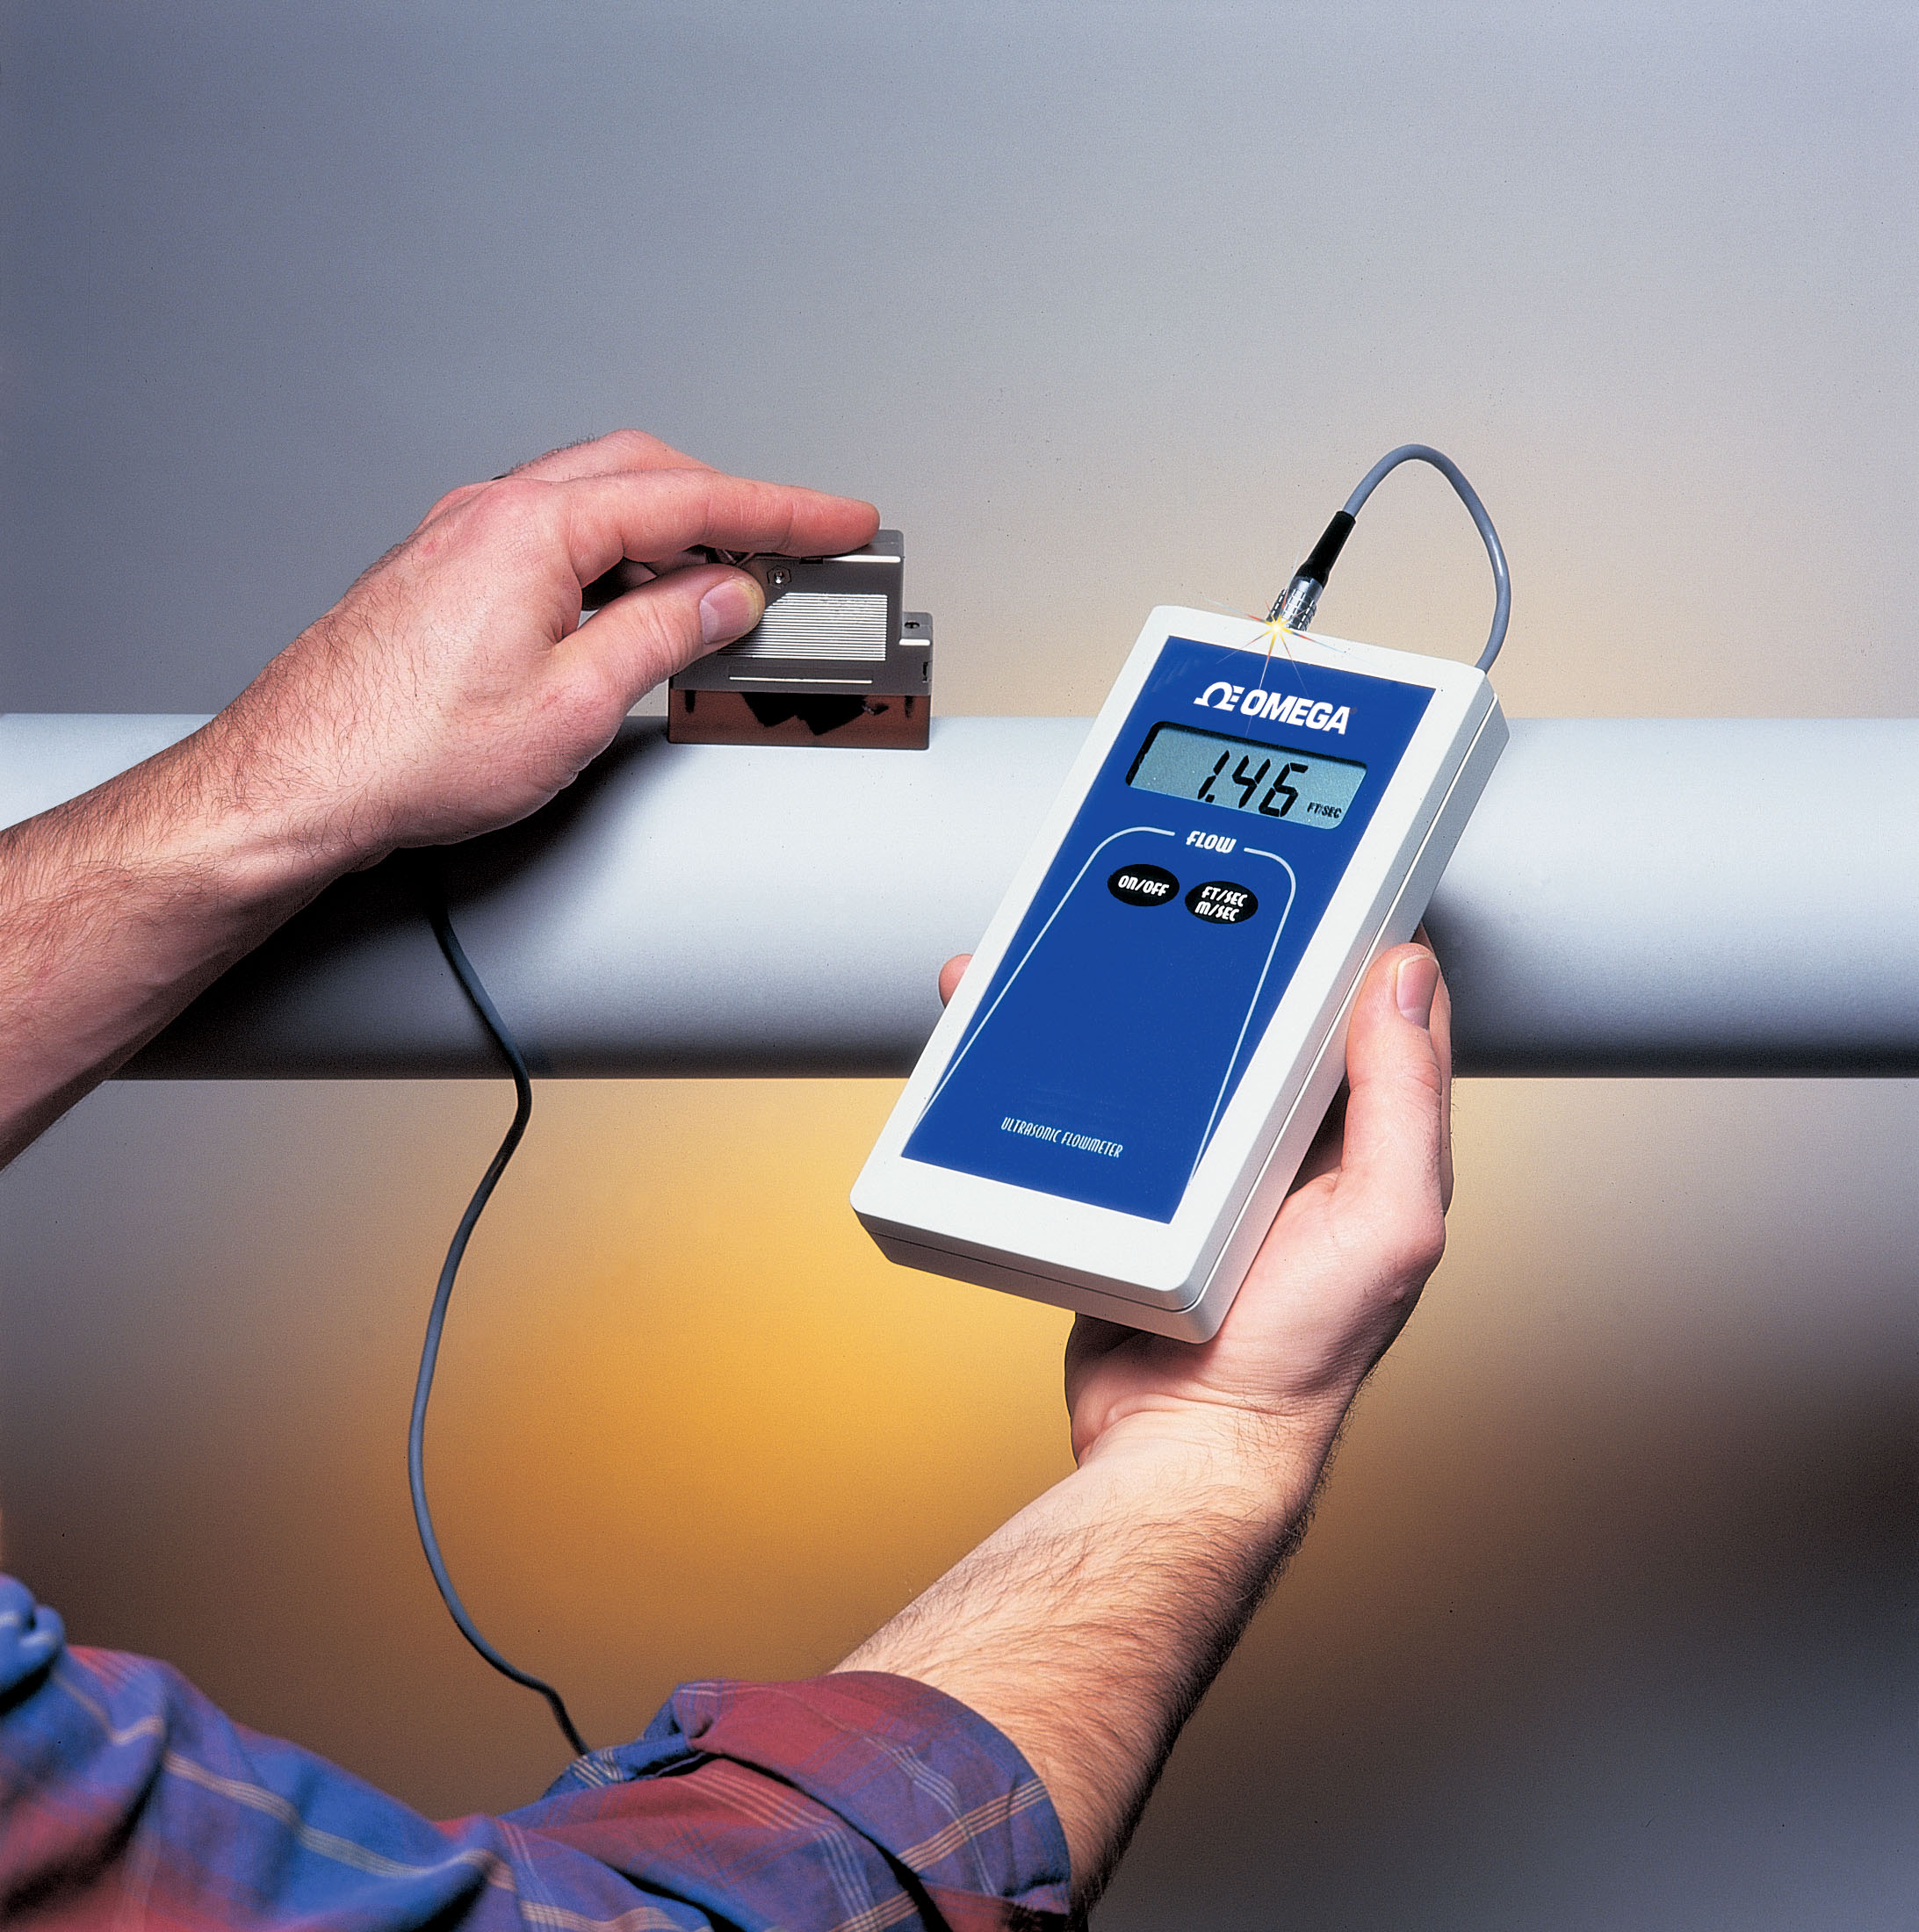 Comparing Doppler and transit time ultrasonic flow meters